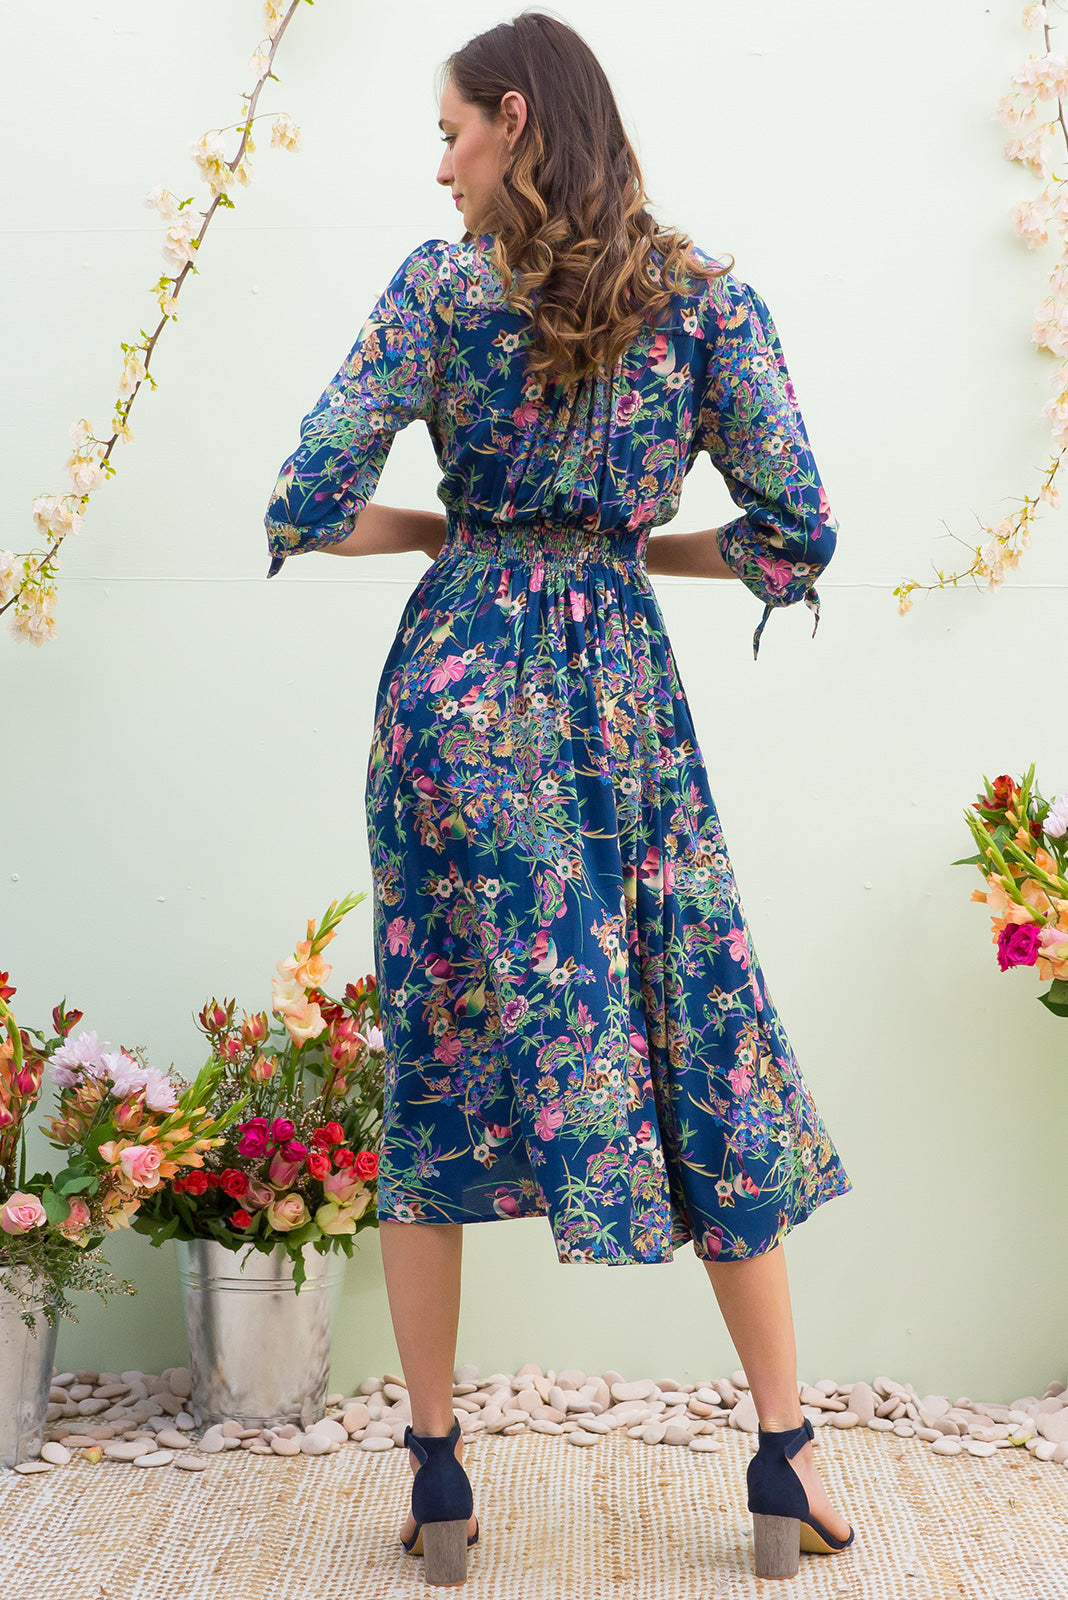 Henrietta Honey Eater Navy Midi dress features a vintage inspired fitted basque waist and elasticated waist with a midi sleeve and deep v neck the fabric is a soft woven rayon in a soft navy intricate bird and floral print